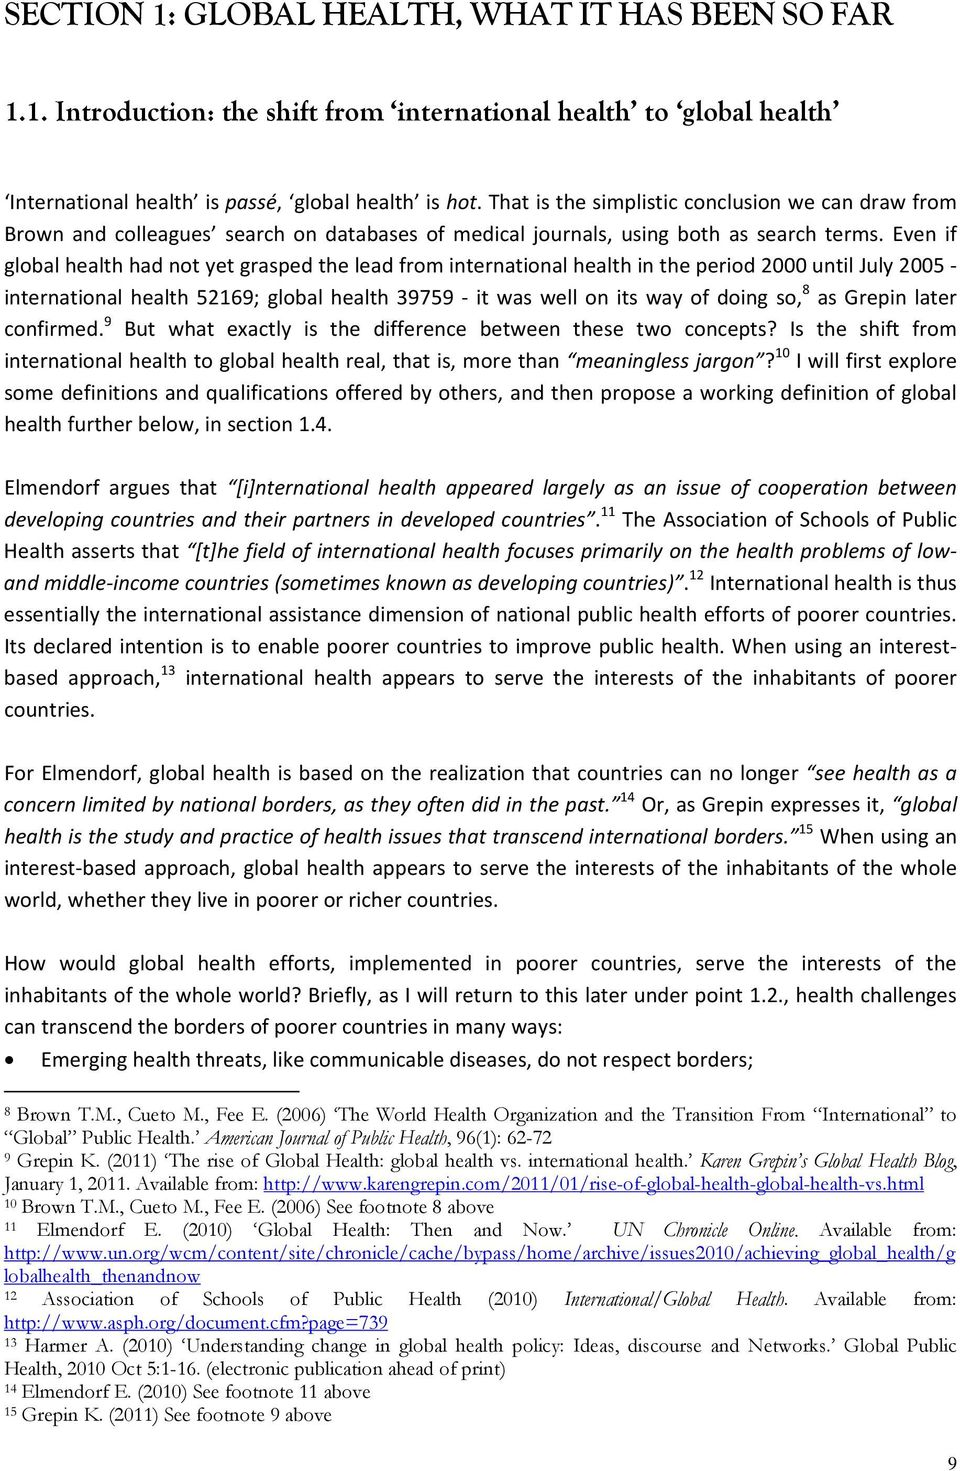 Even if global health had not yet grasped the lead from international health in the period 2000 until July 2005 international health 52169; global health 39759 it was well on its way of doing so, 8